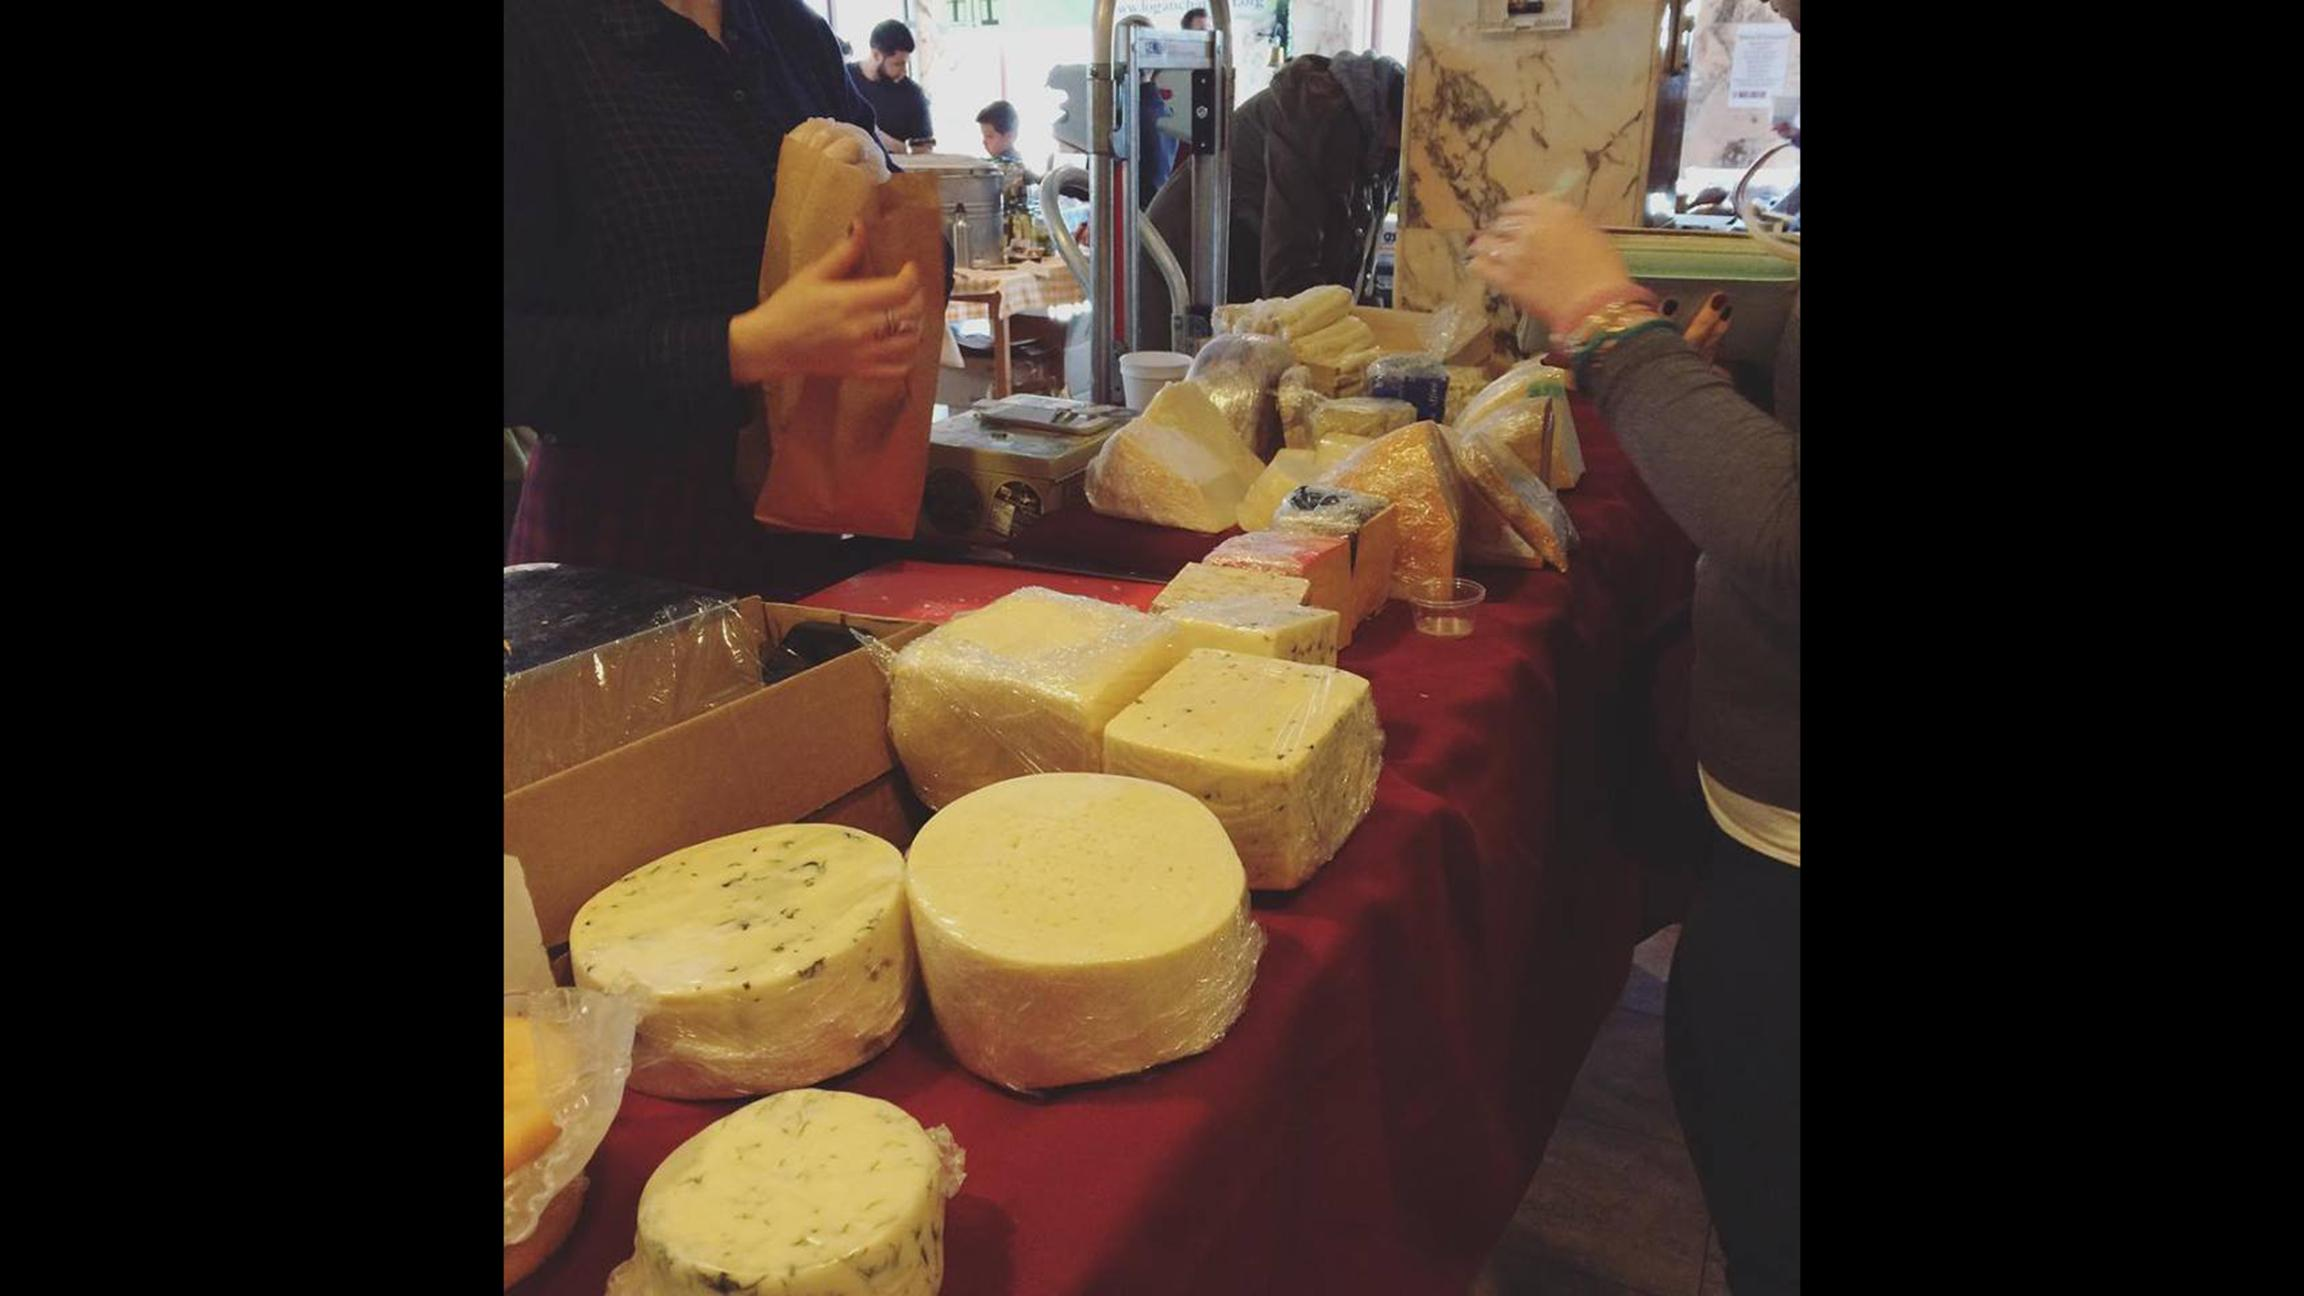 Say cheese! Stock up on Stamper Cheese options and other delights at the Holiday Pop-Up Farmers Market. (Logan Square Farmers Market / Facebook)